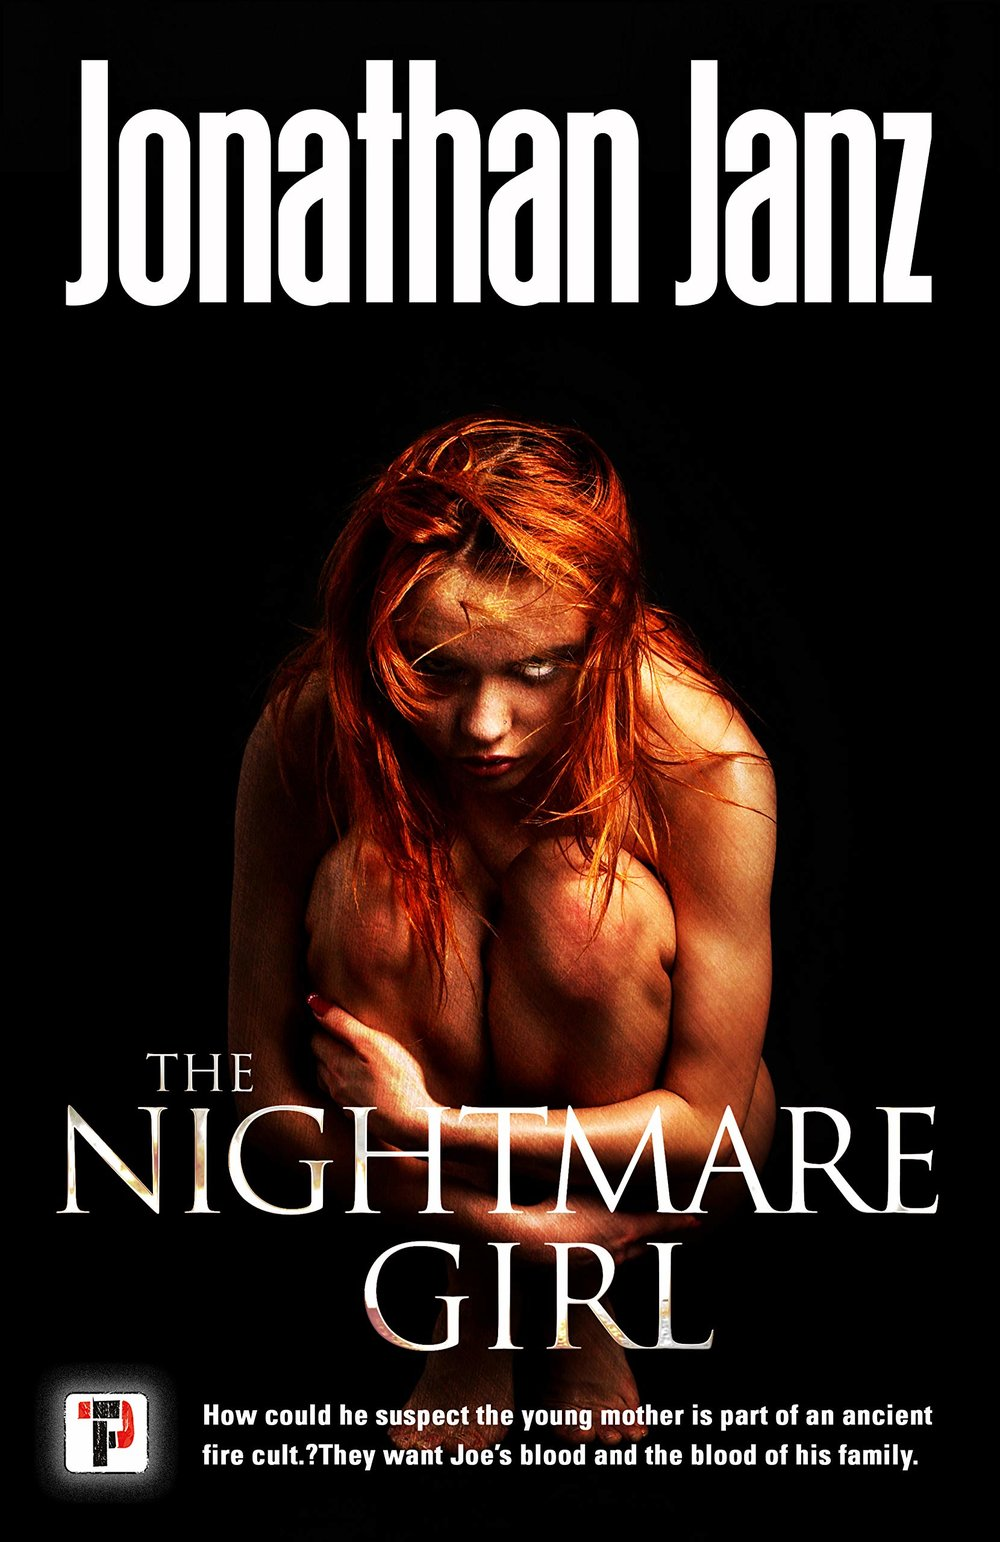 The Nightmare Girl_Jonathan Janz.jpg